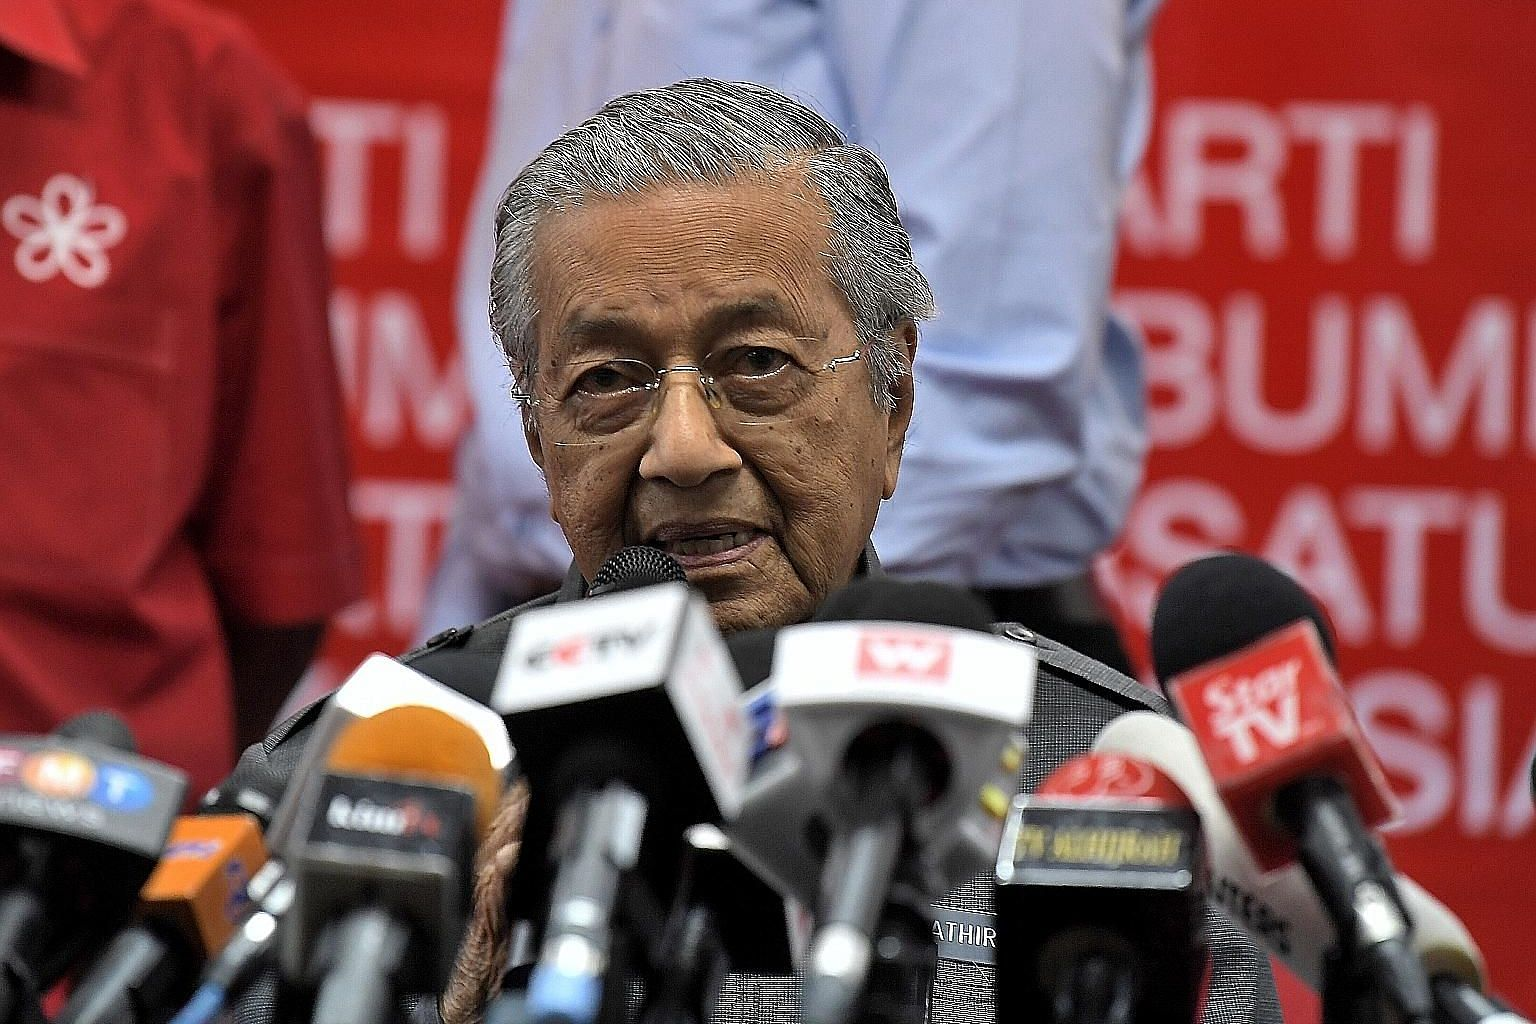 Malaysian Prime Minister Mahathir Mohamad said at a press conference in Kuala Lumpur yesterday that Malaysia is pulling out of the KL-Singapore high-speed rail project. Malaysia is liable to pay Singapore a compensation for not fulfilling the agreeme